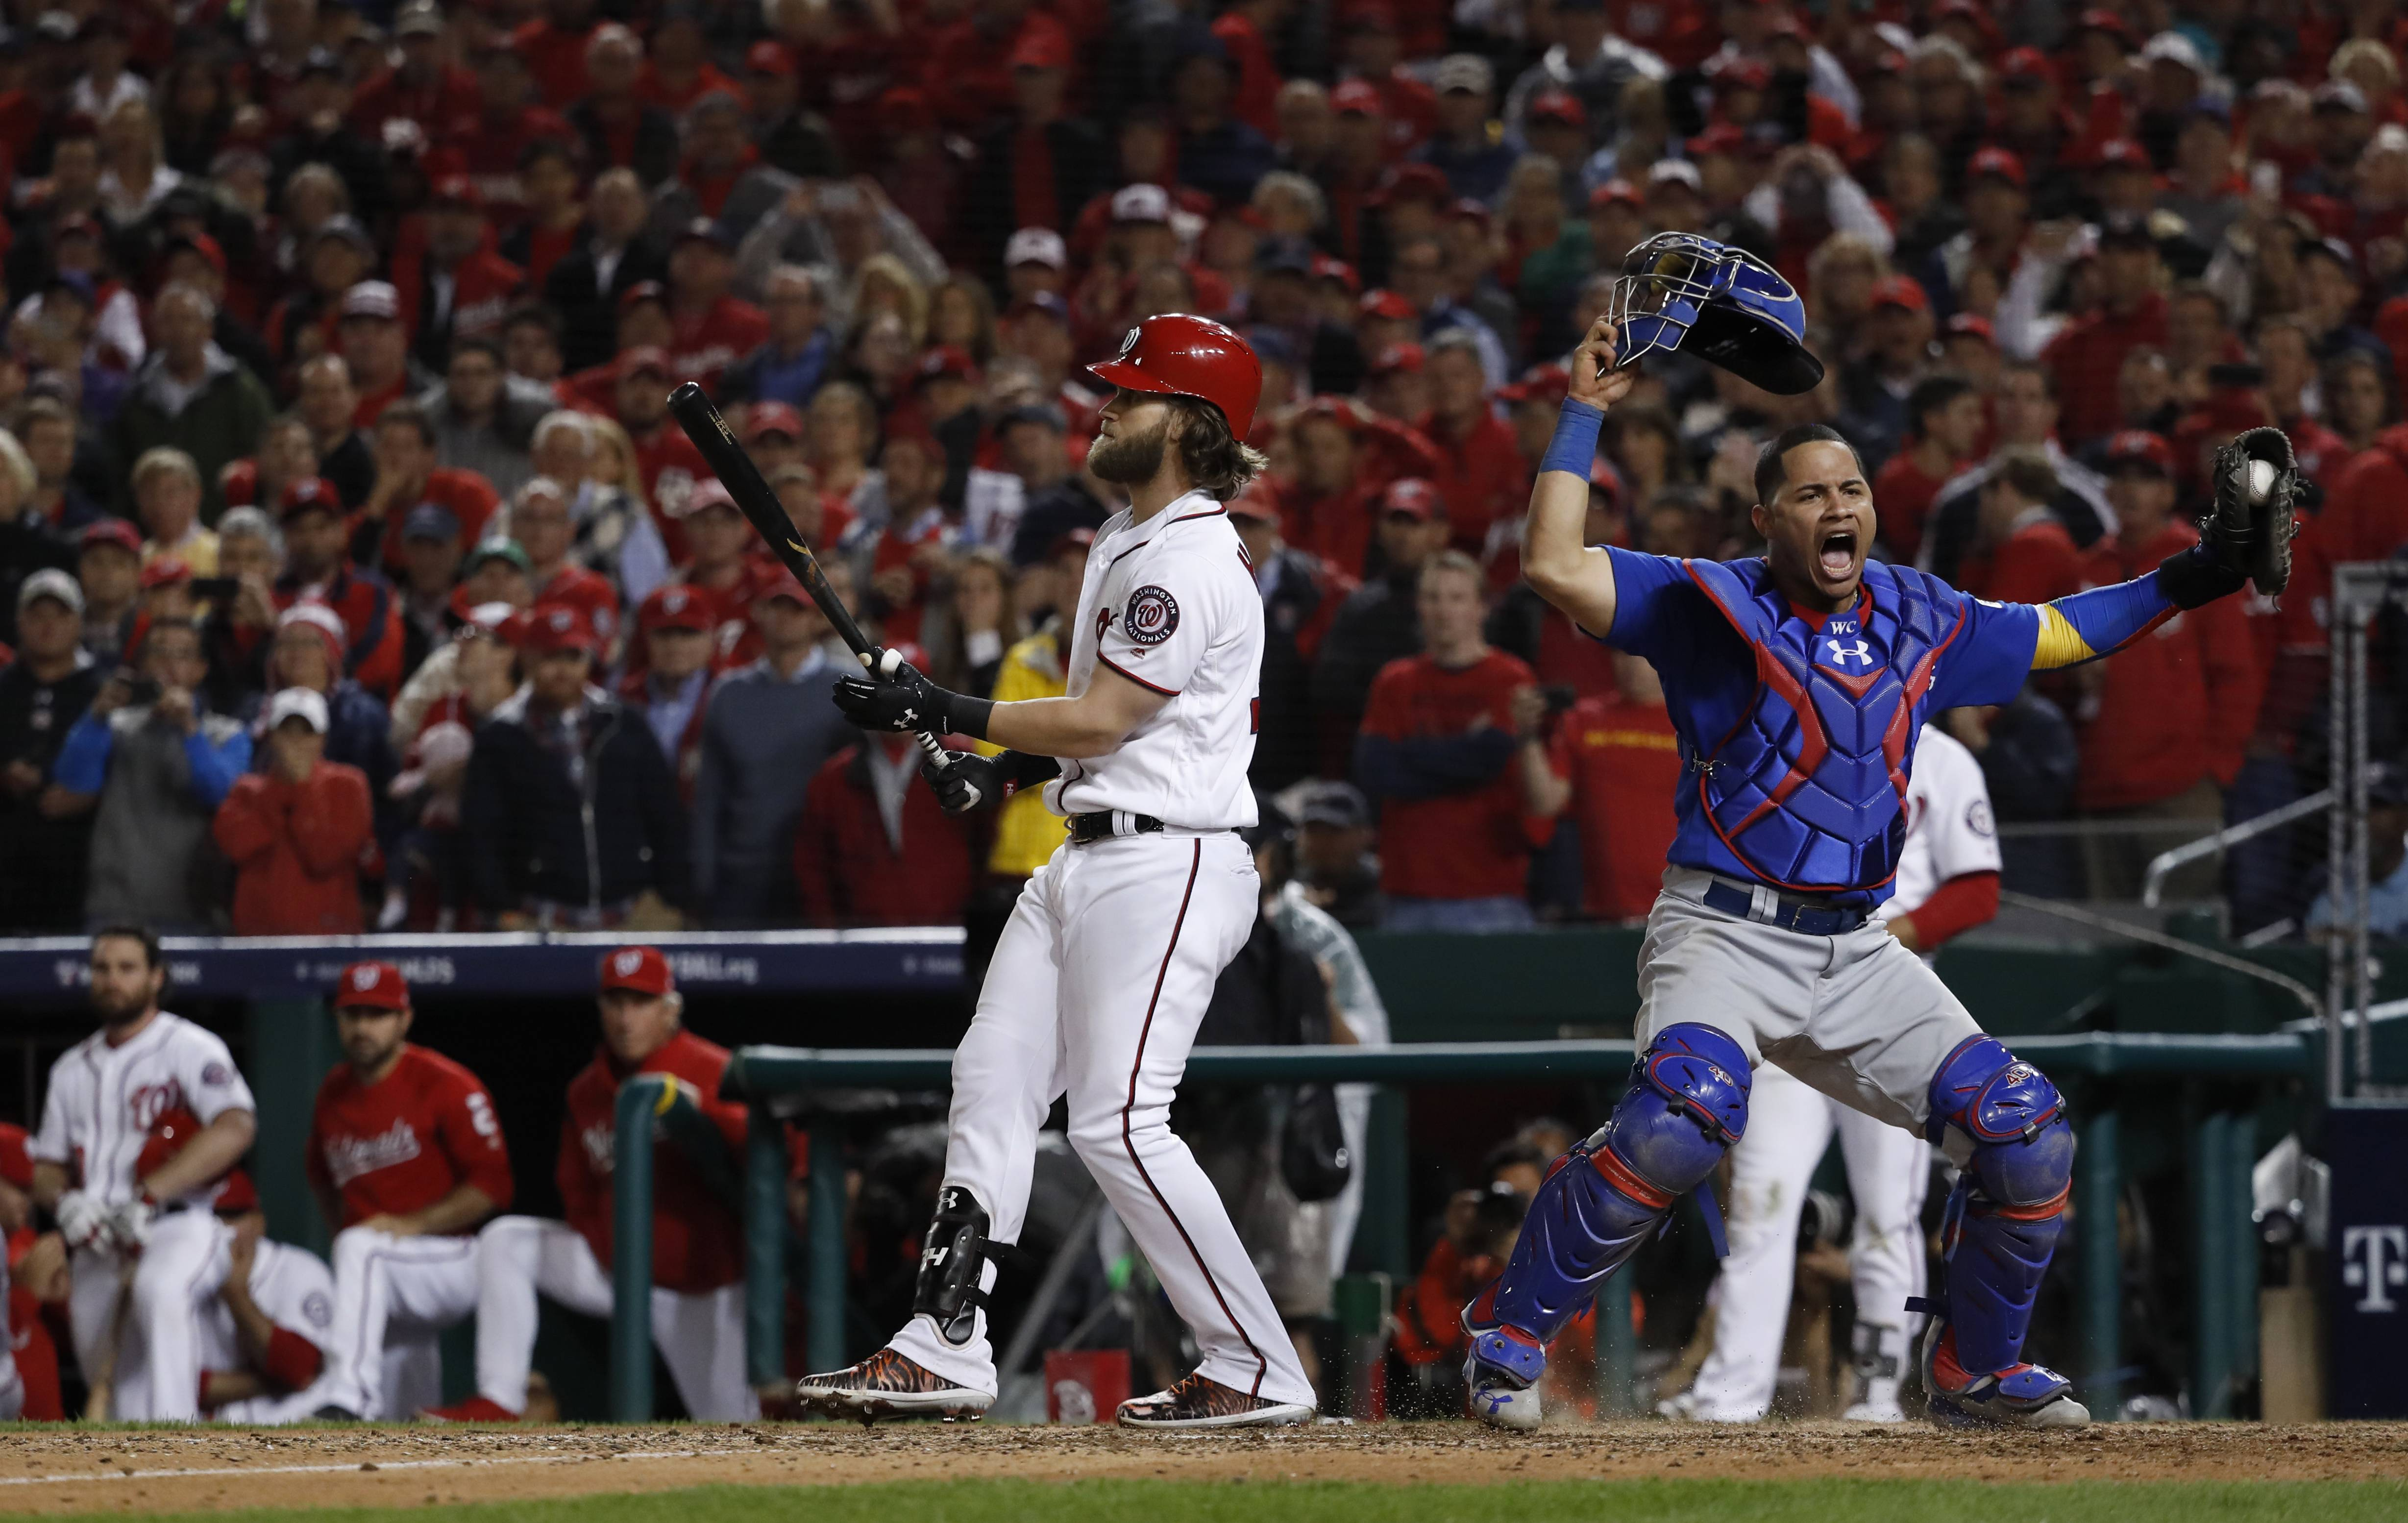 Chicago Cubs hang on for 9-8 win, advance to NLCS